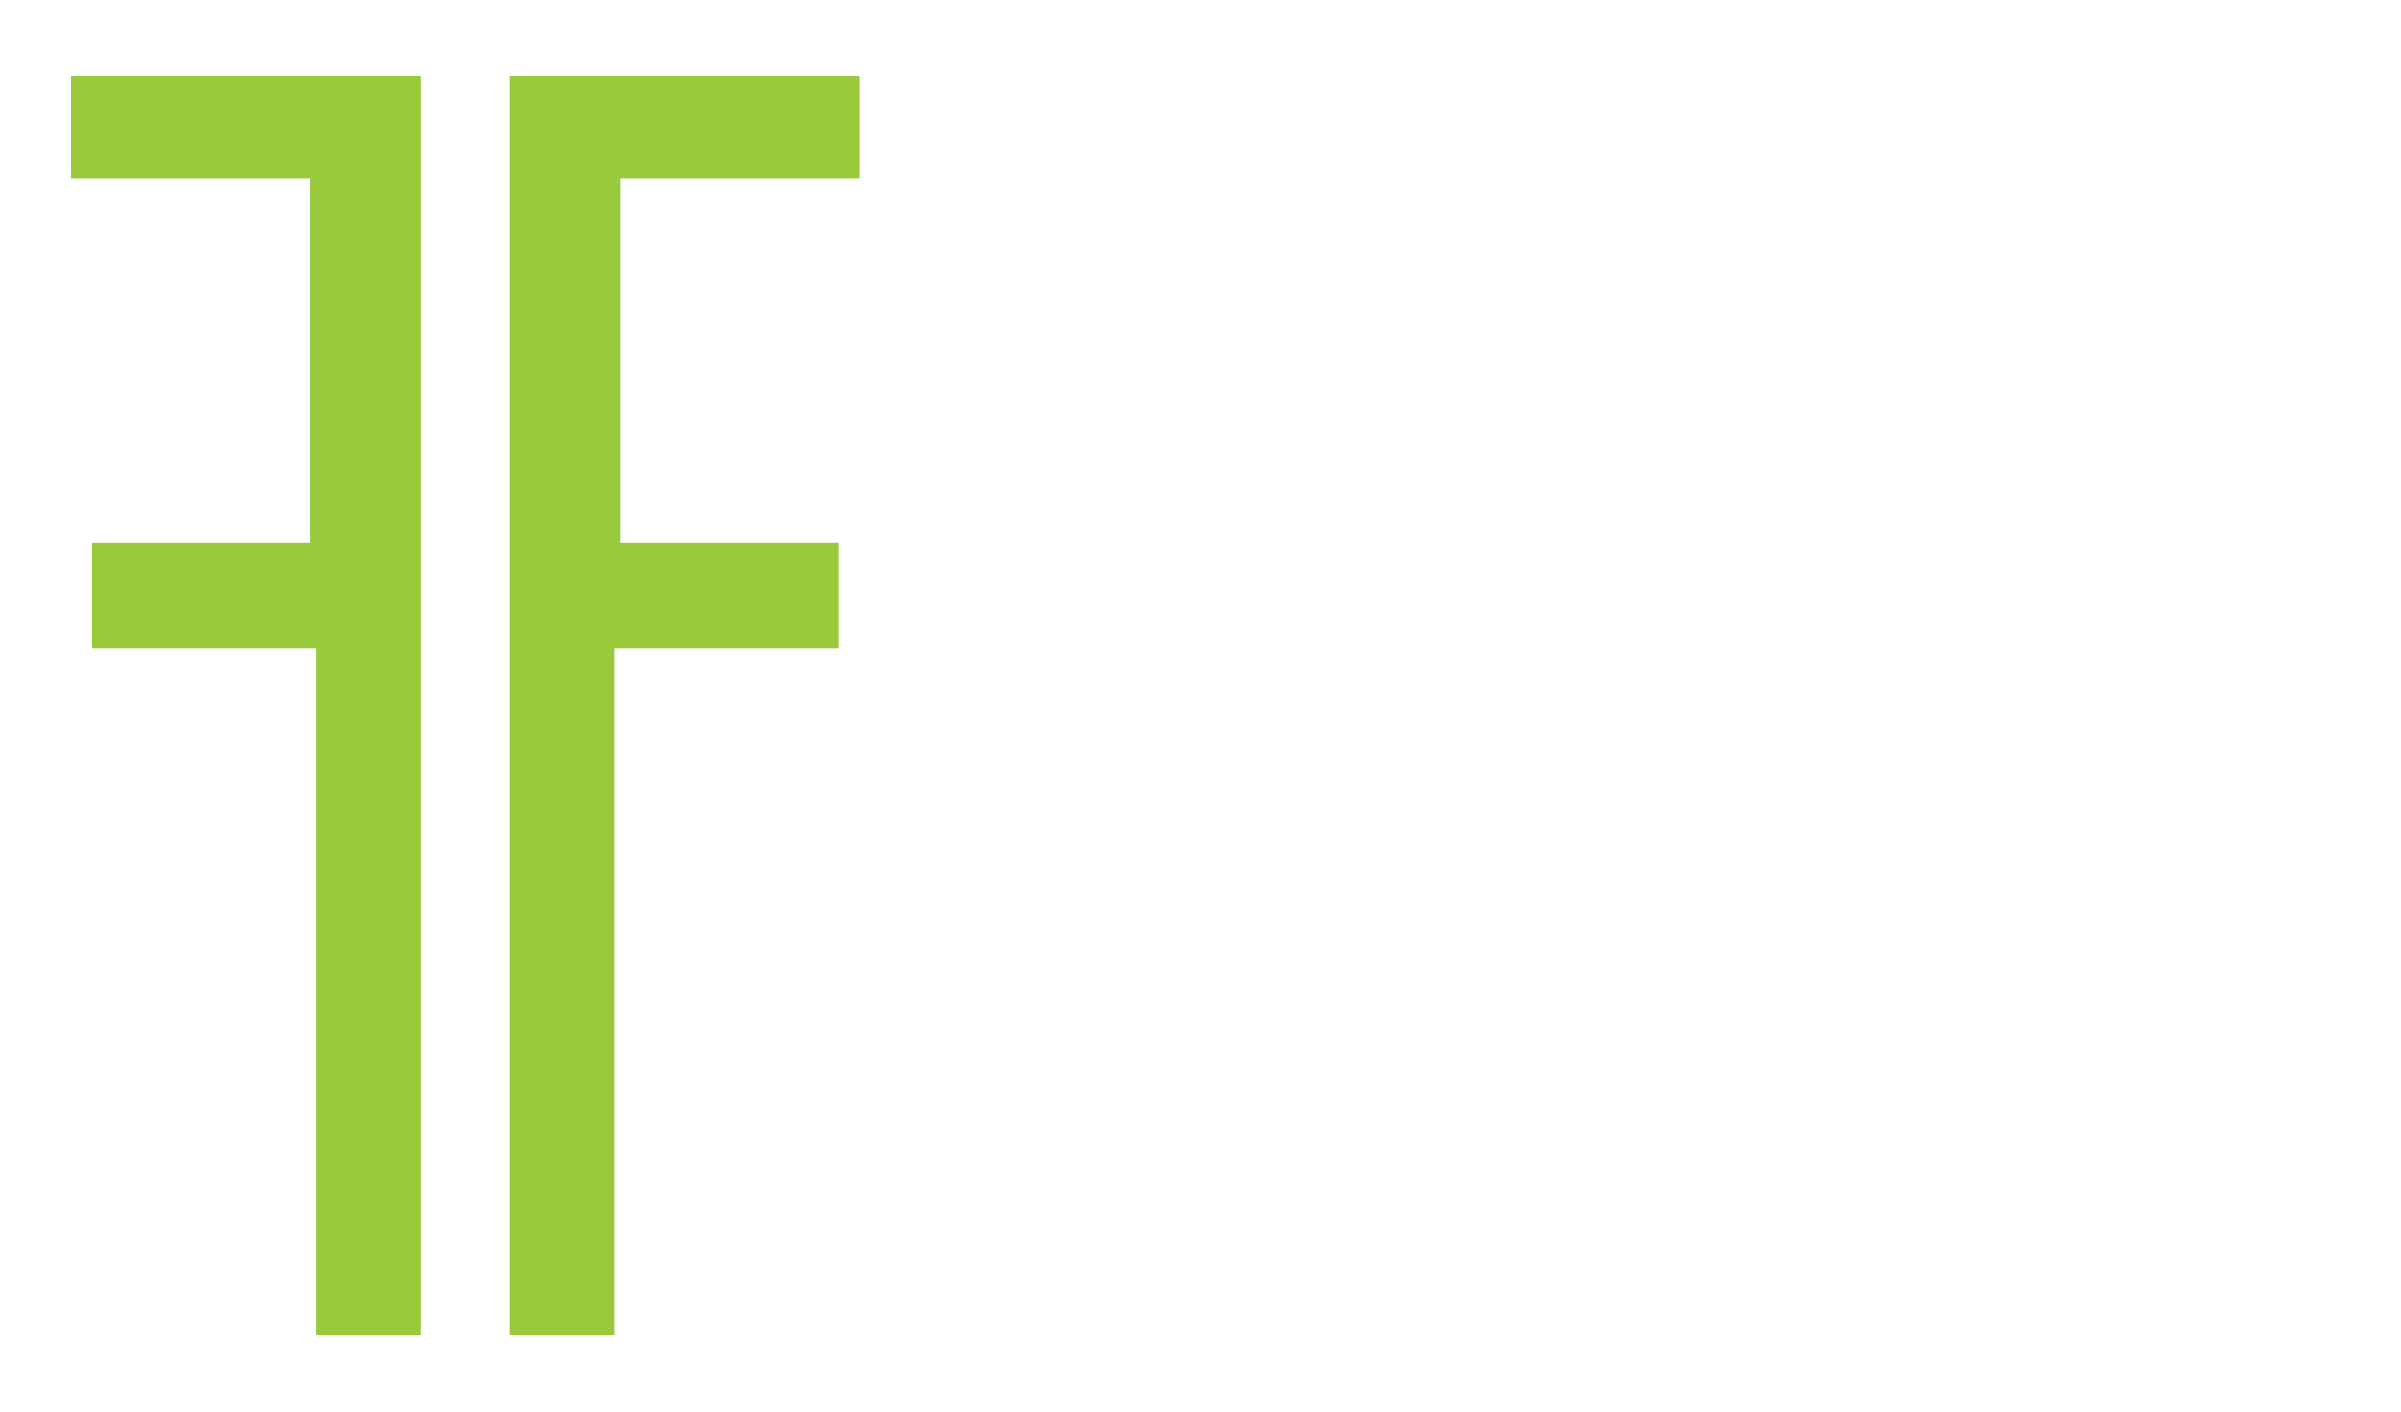 The Field Foundation of Illinois